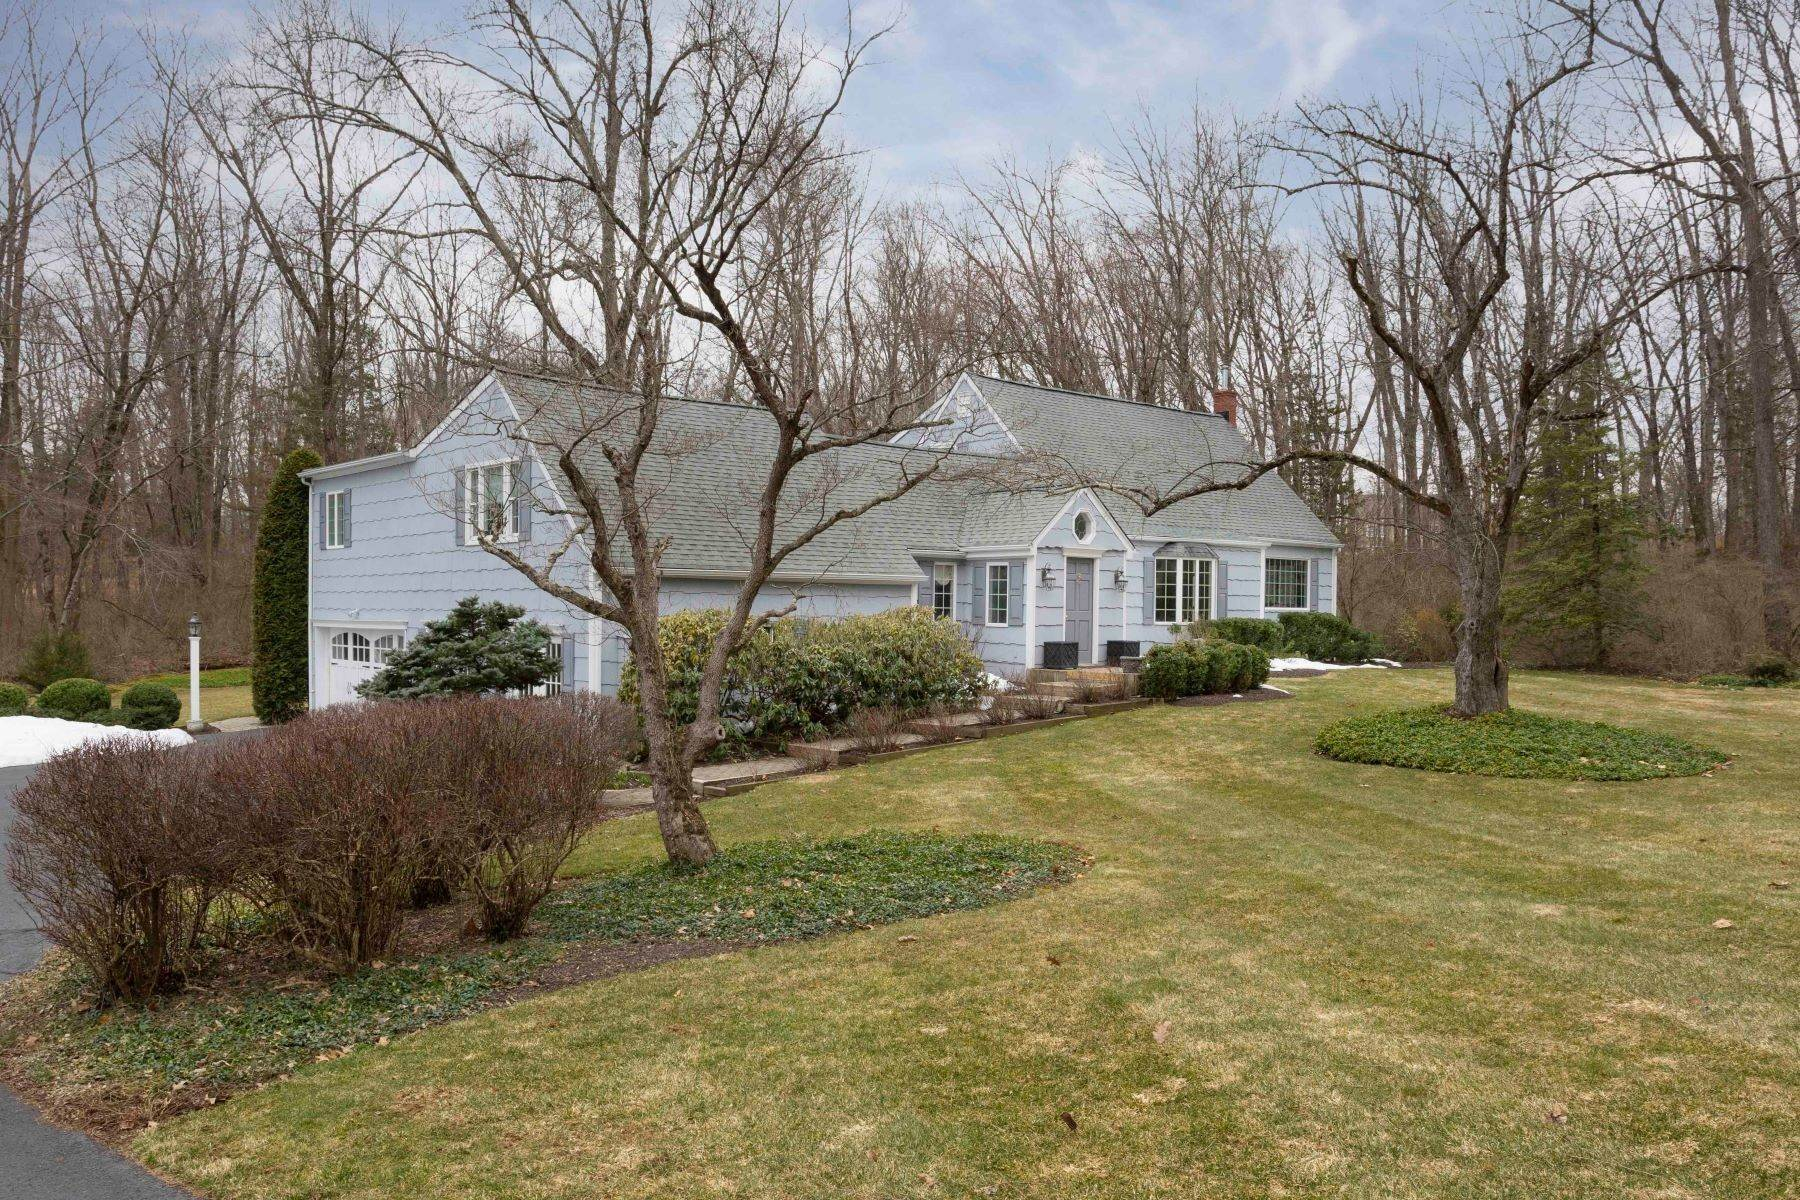 Single Family Homes for Sale at Sun Filled Expanded Cape 177 Spencer Road Basking Ridge, New Jersey 07920 United States